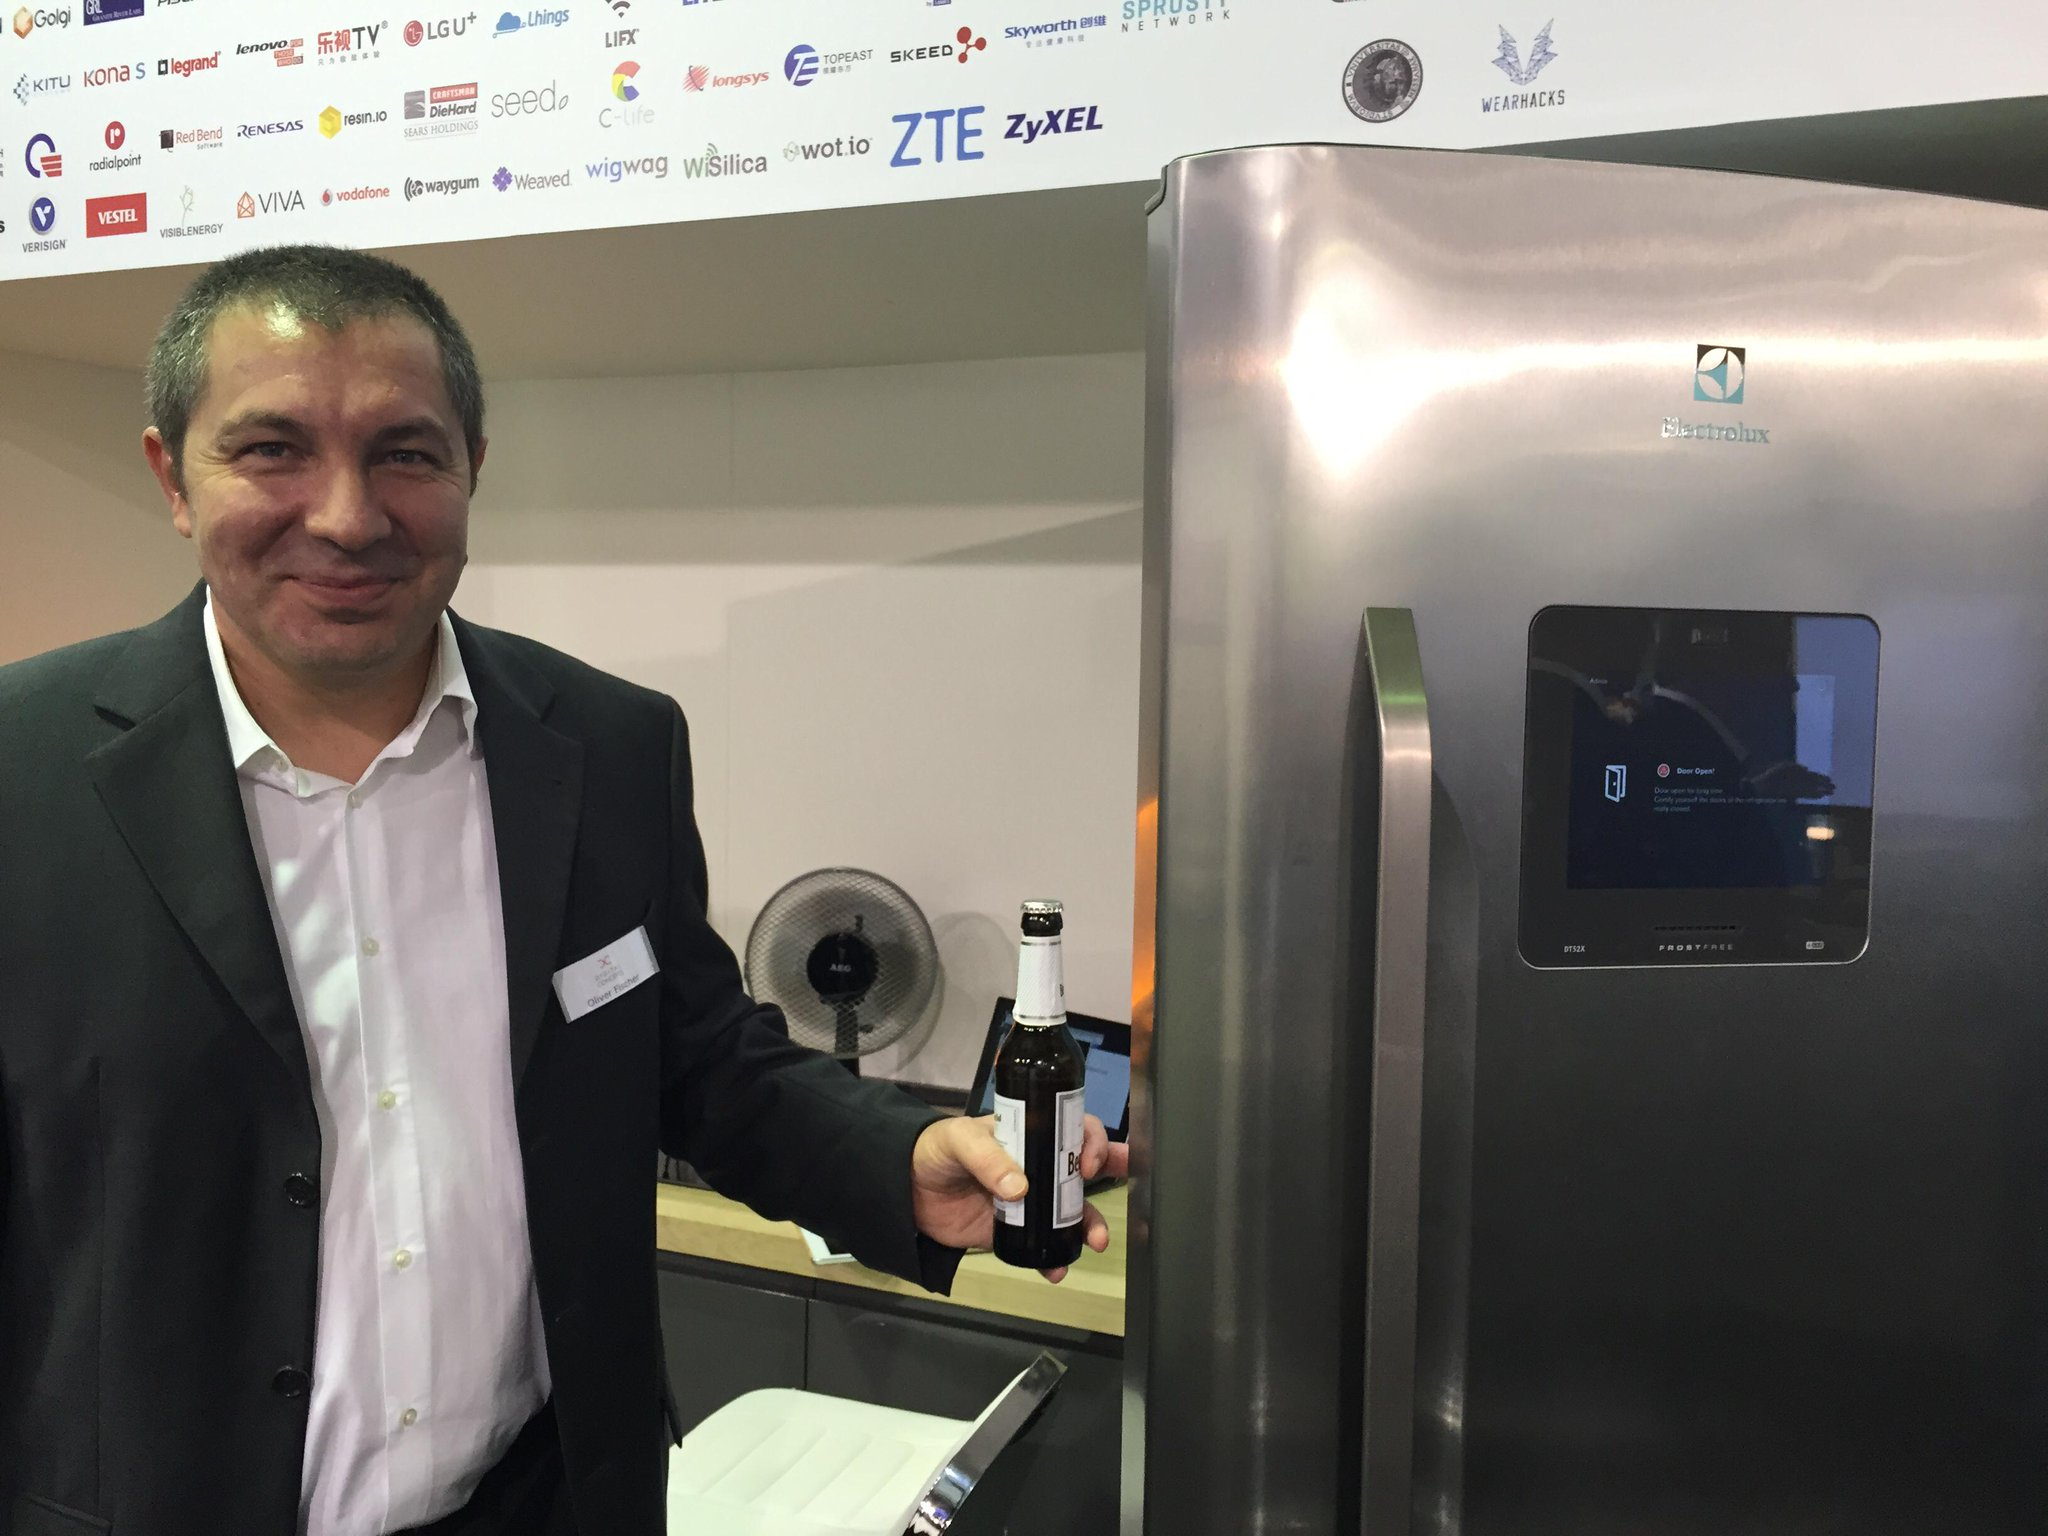 ... and now (step 2) the beer is ready. EnOcean over IP at #IFA15 at it' s best via #AllJoyn http://t.co/KX0jGEN3ya